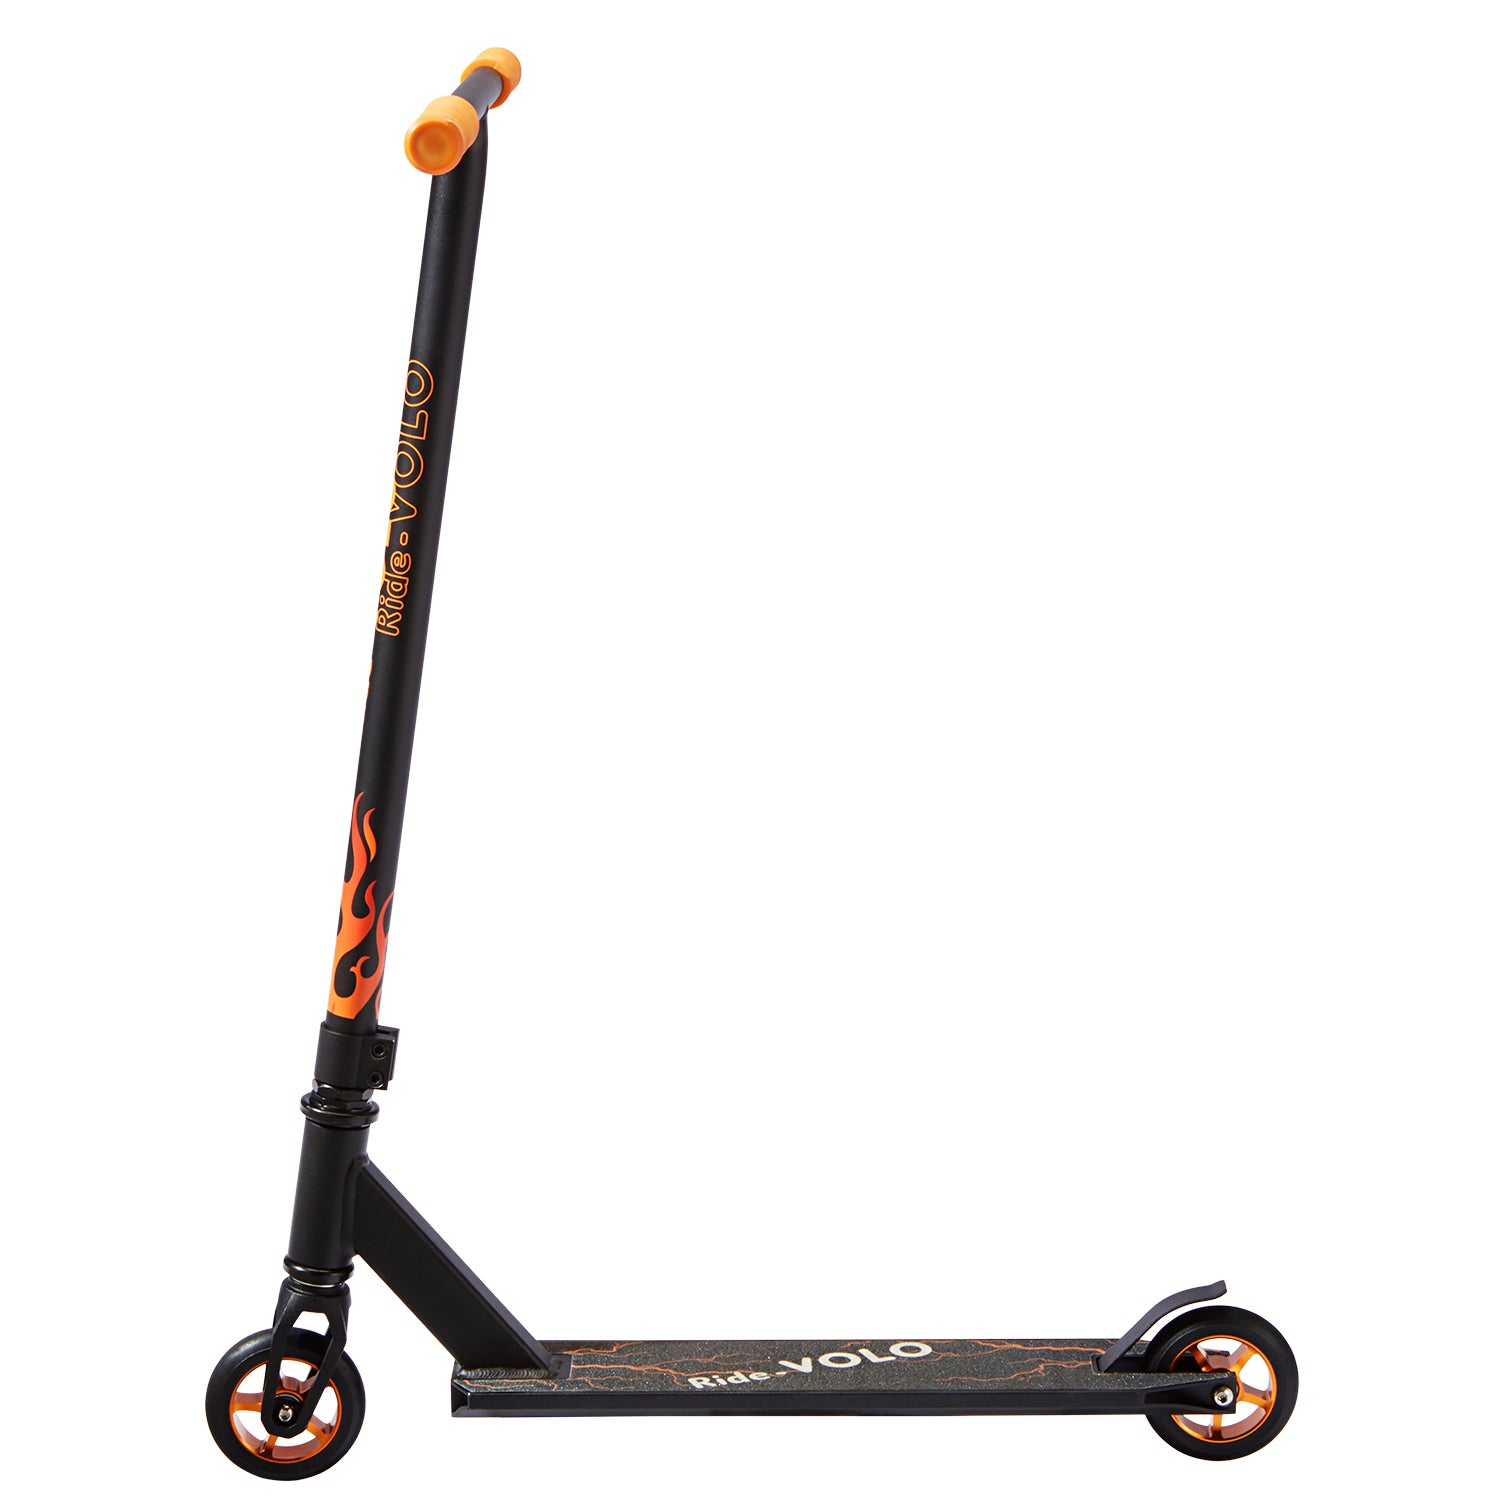 T01 stunt scooter side image